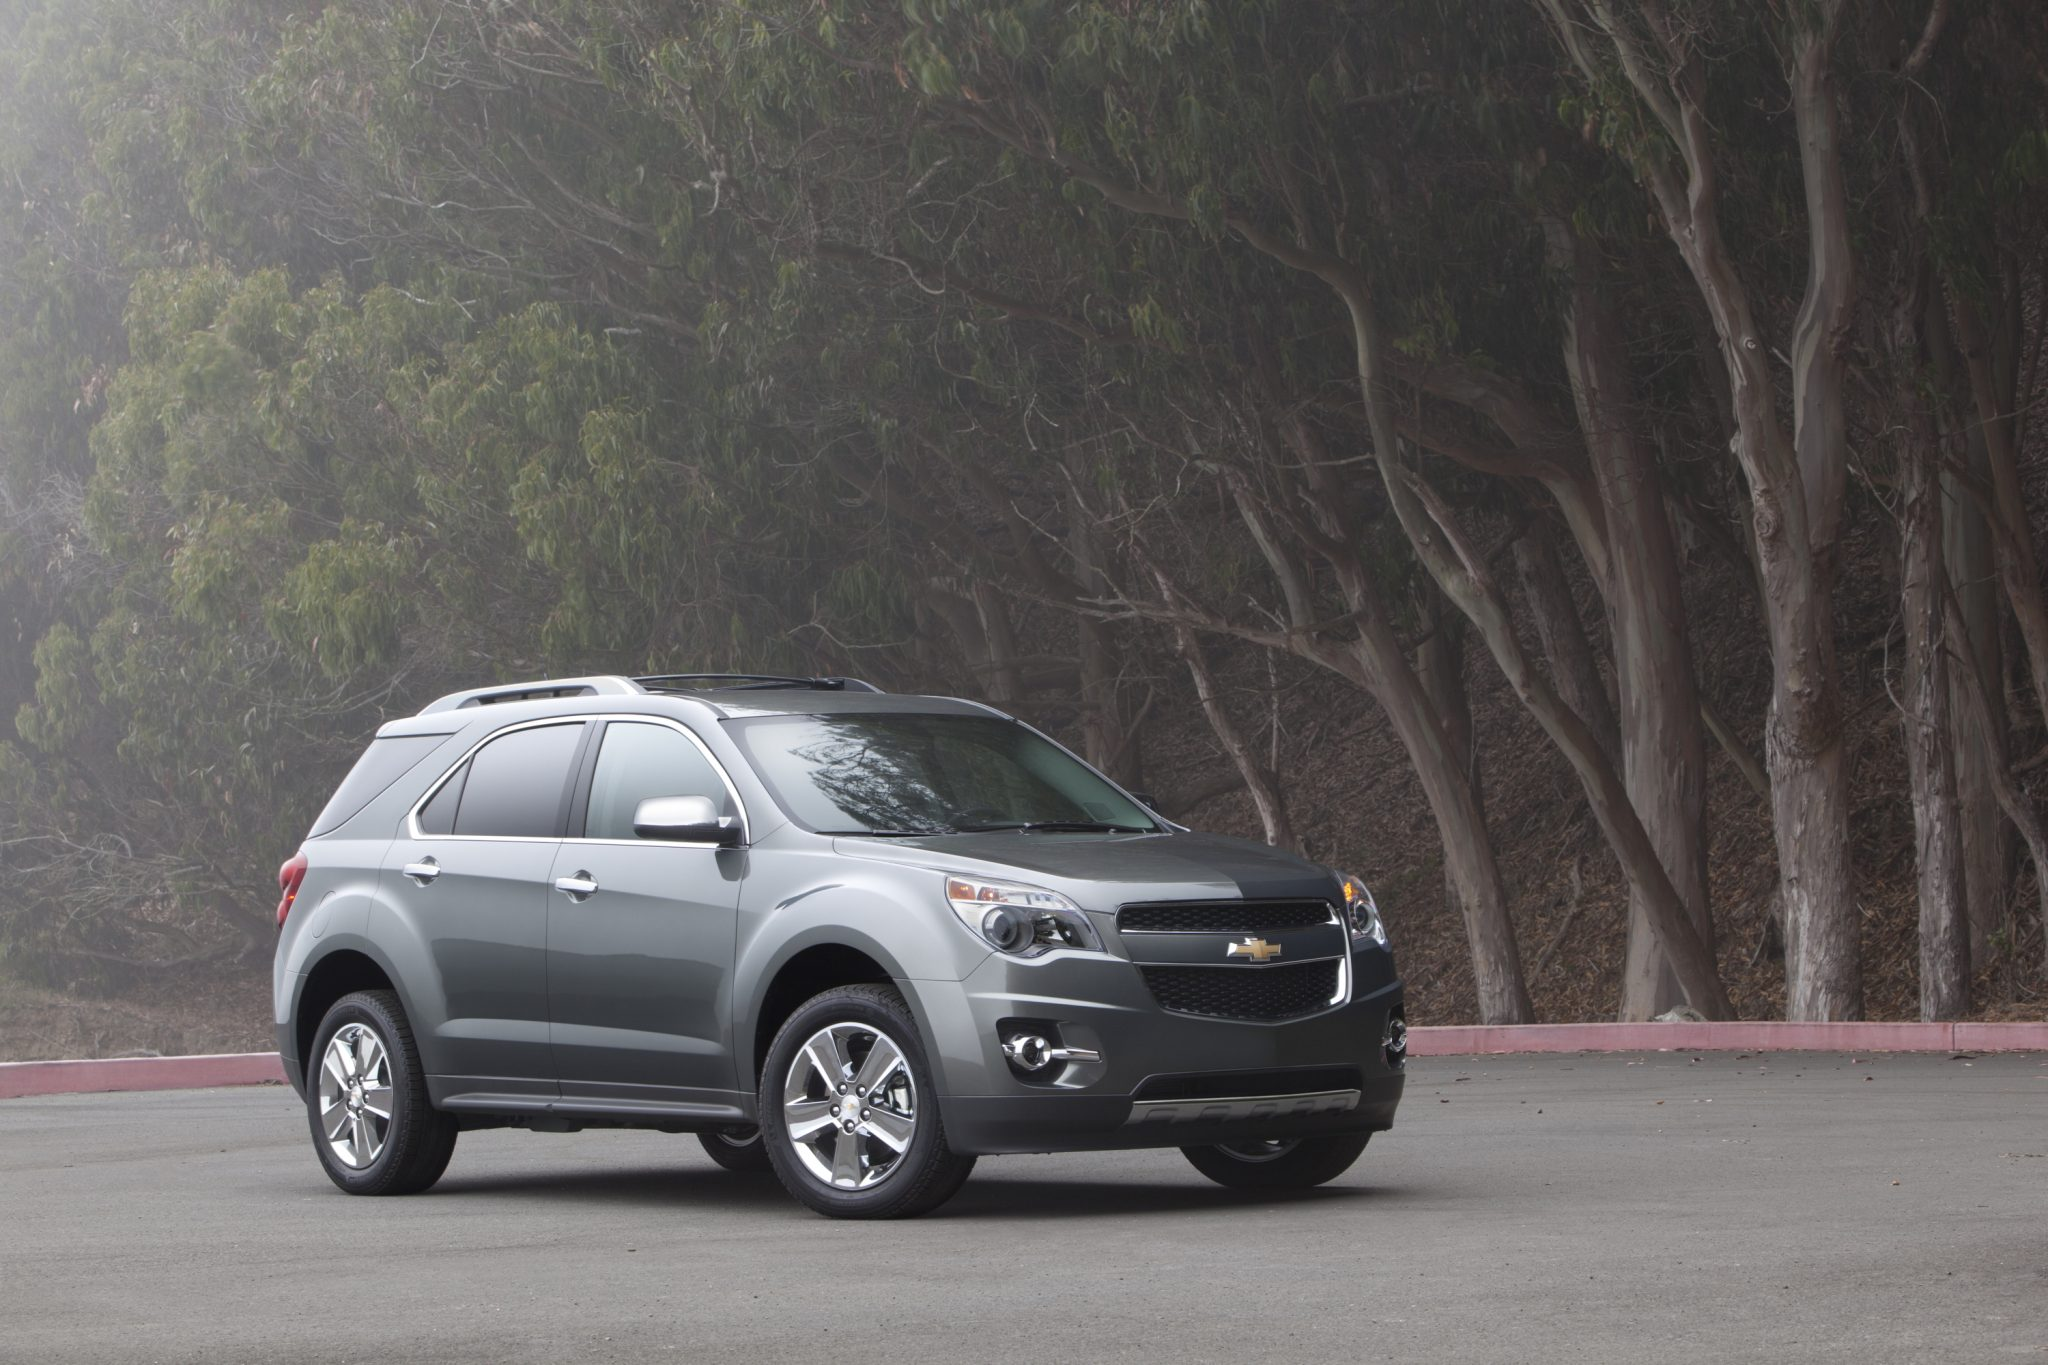 Updates for the 2015 Chevy Equinox